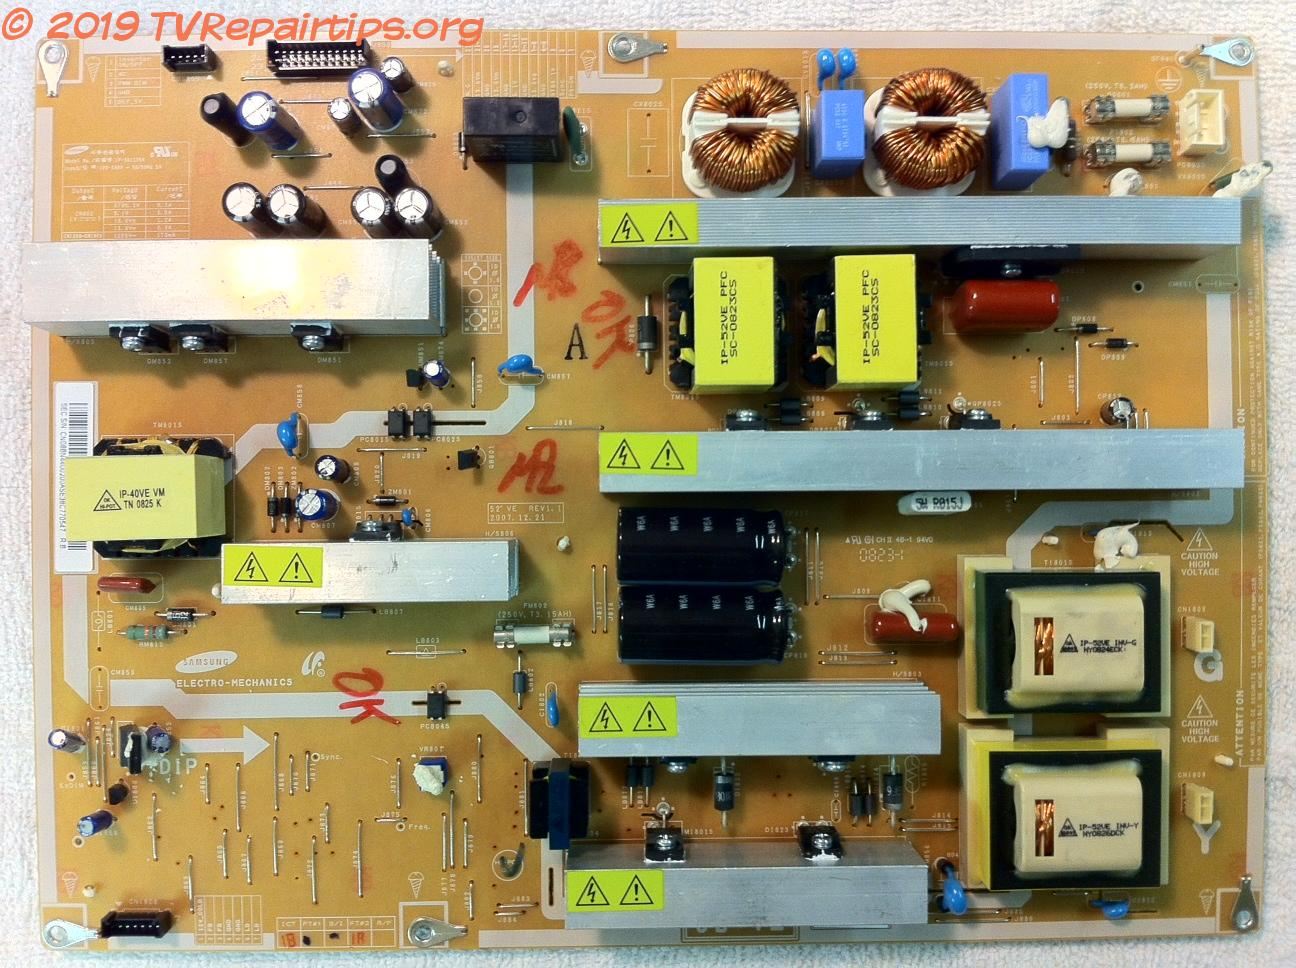 Power Supply Diagram Samsung Bn44 00200a Electrical Wiring Lm317 Circuit Rh Tvrepairtips Org Atx